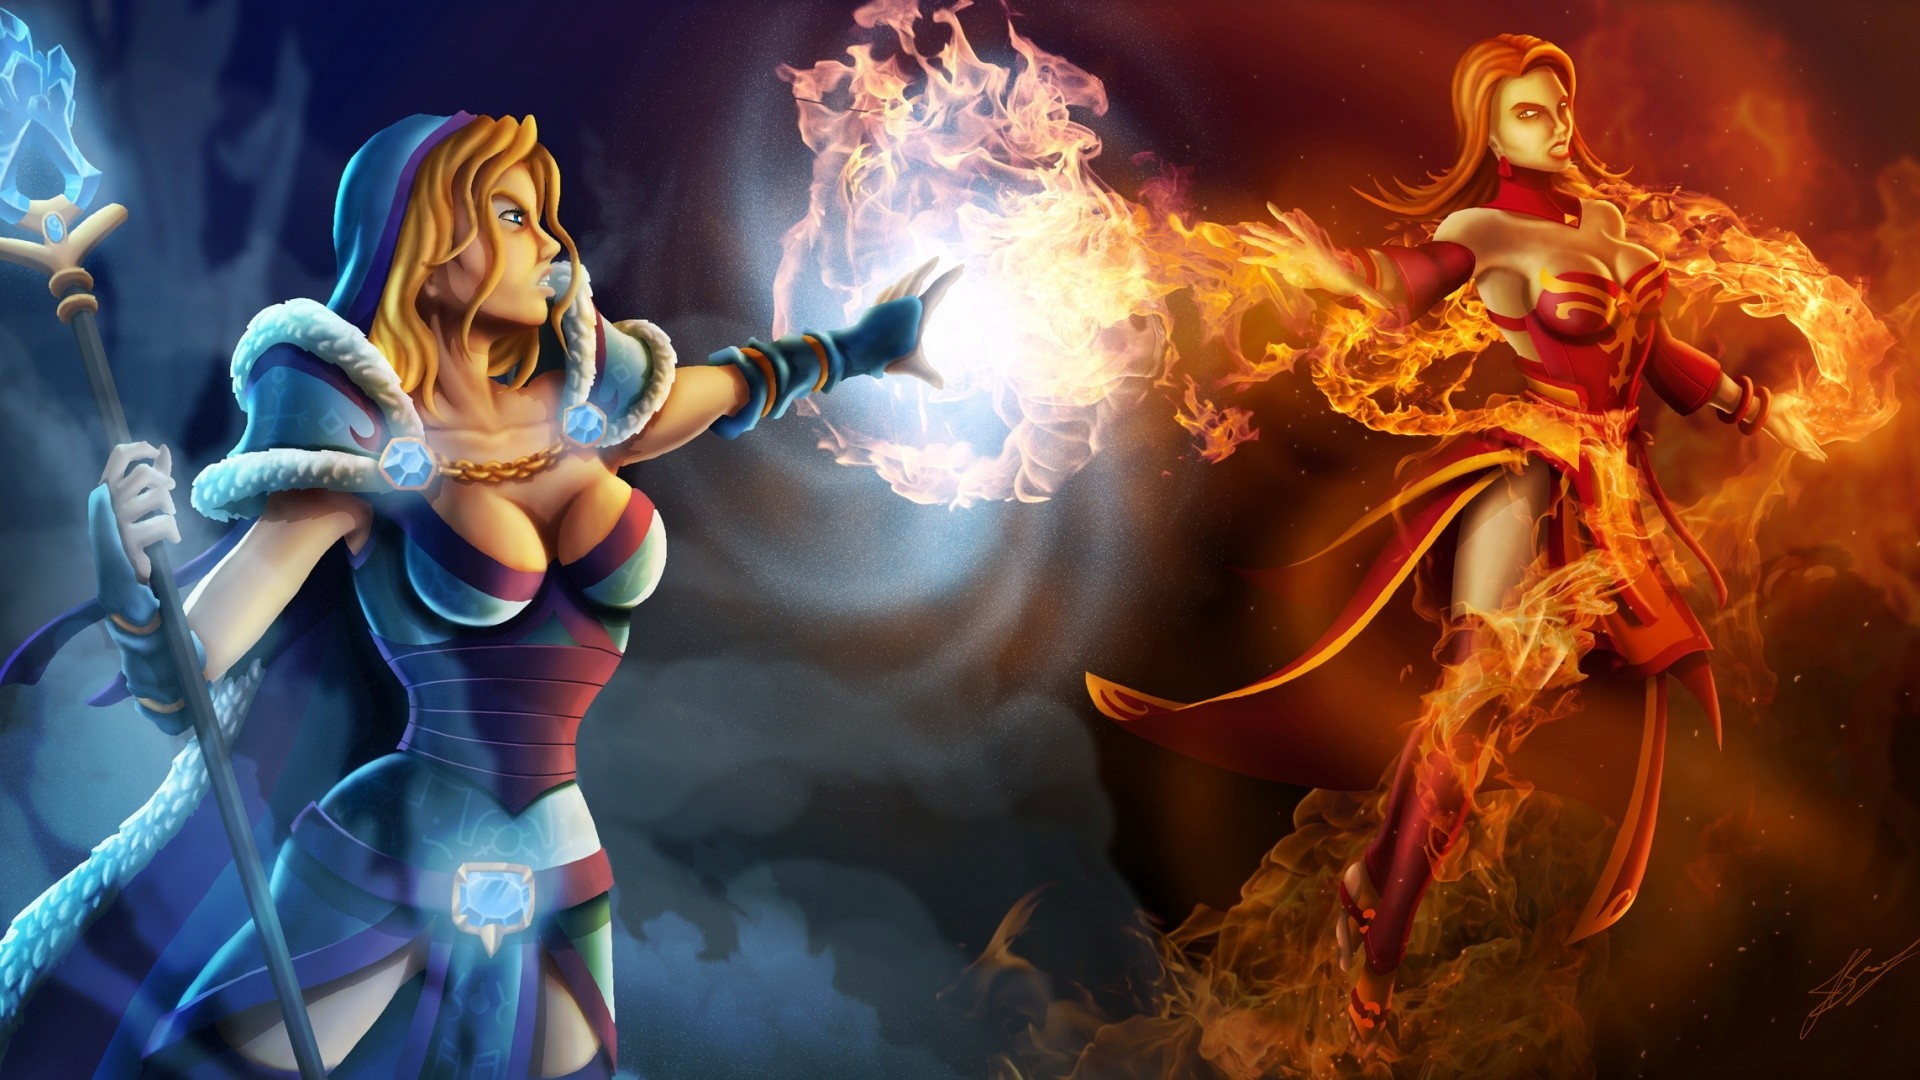 1920x1080 Dota 2 Wallpapers  Hd Awesome Lina Dota 2 Wallpaper Wallpapersafari